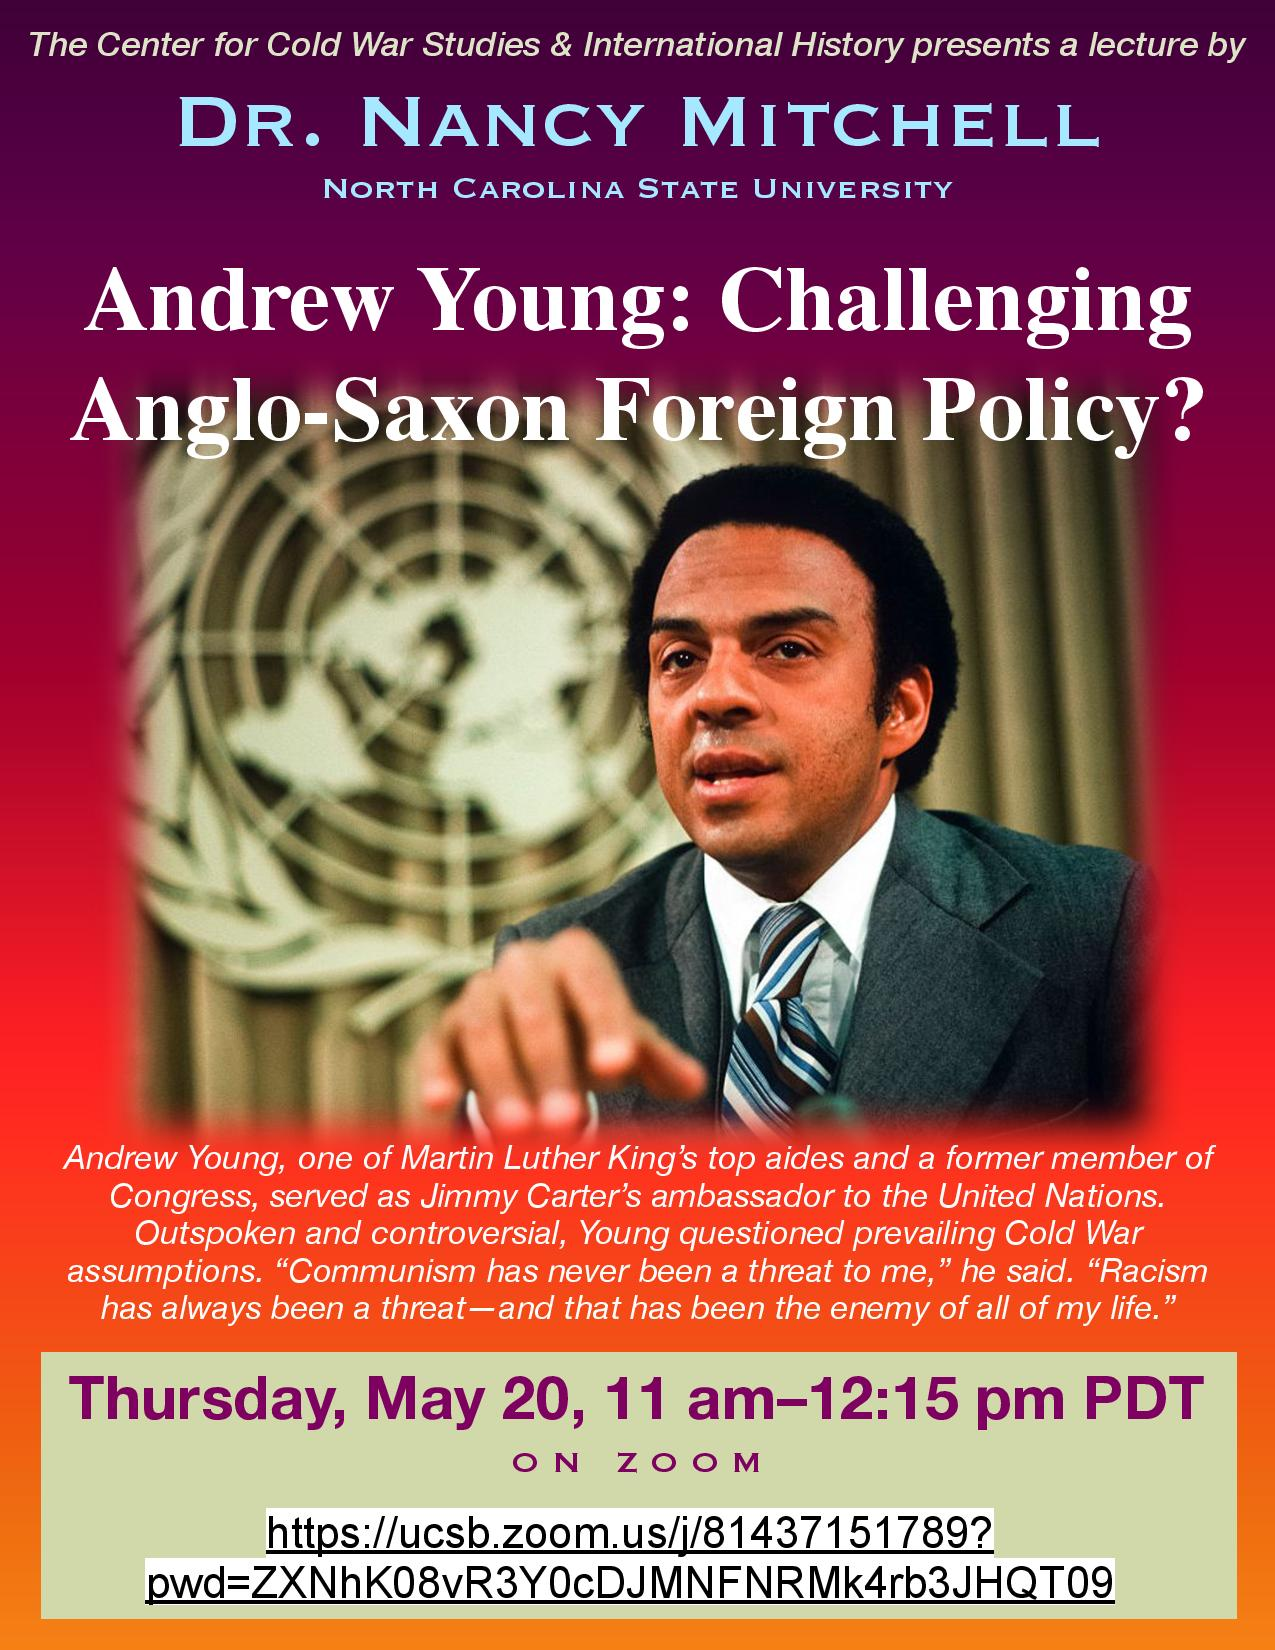 Flyer for Zoom talk for The Center of Cold War Studies & International History by Dr. Nancy Mitchel - Andrew Young: Challenging Anglo-Saxon Foreign Policy on 5/20/21 from 11AM to 12:15PM PDT